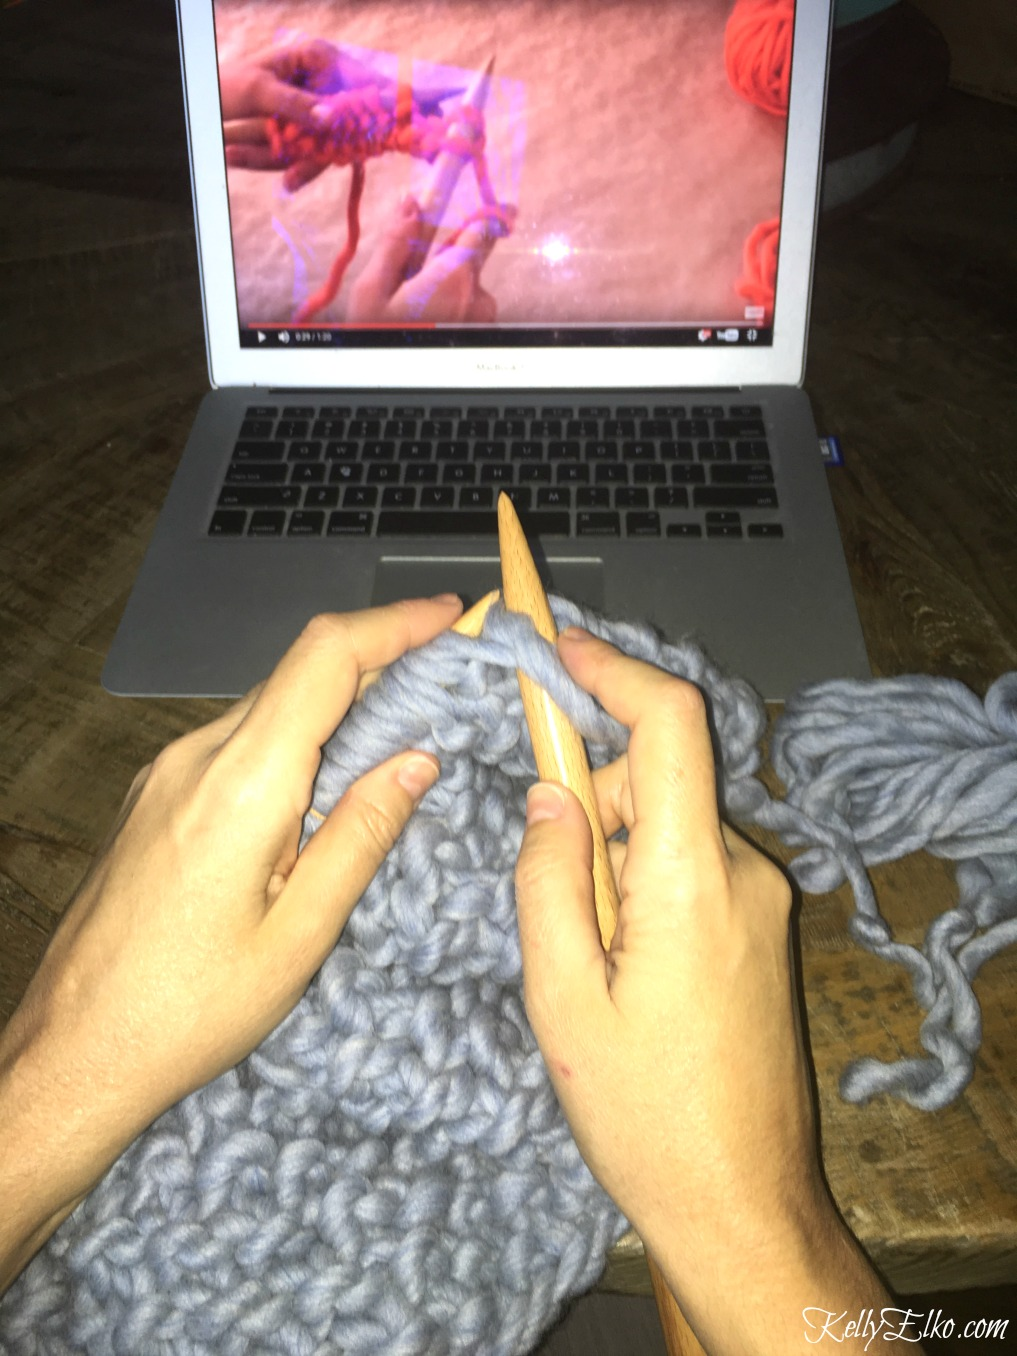 Learn how to knit using these user friendly videos that make it so simple! kellyelko.com